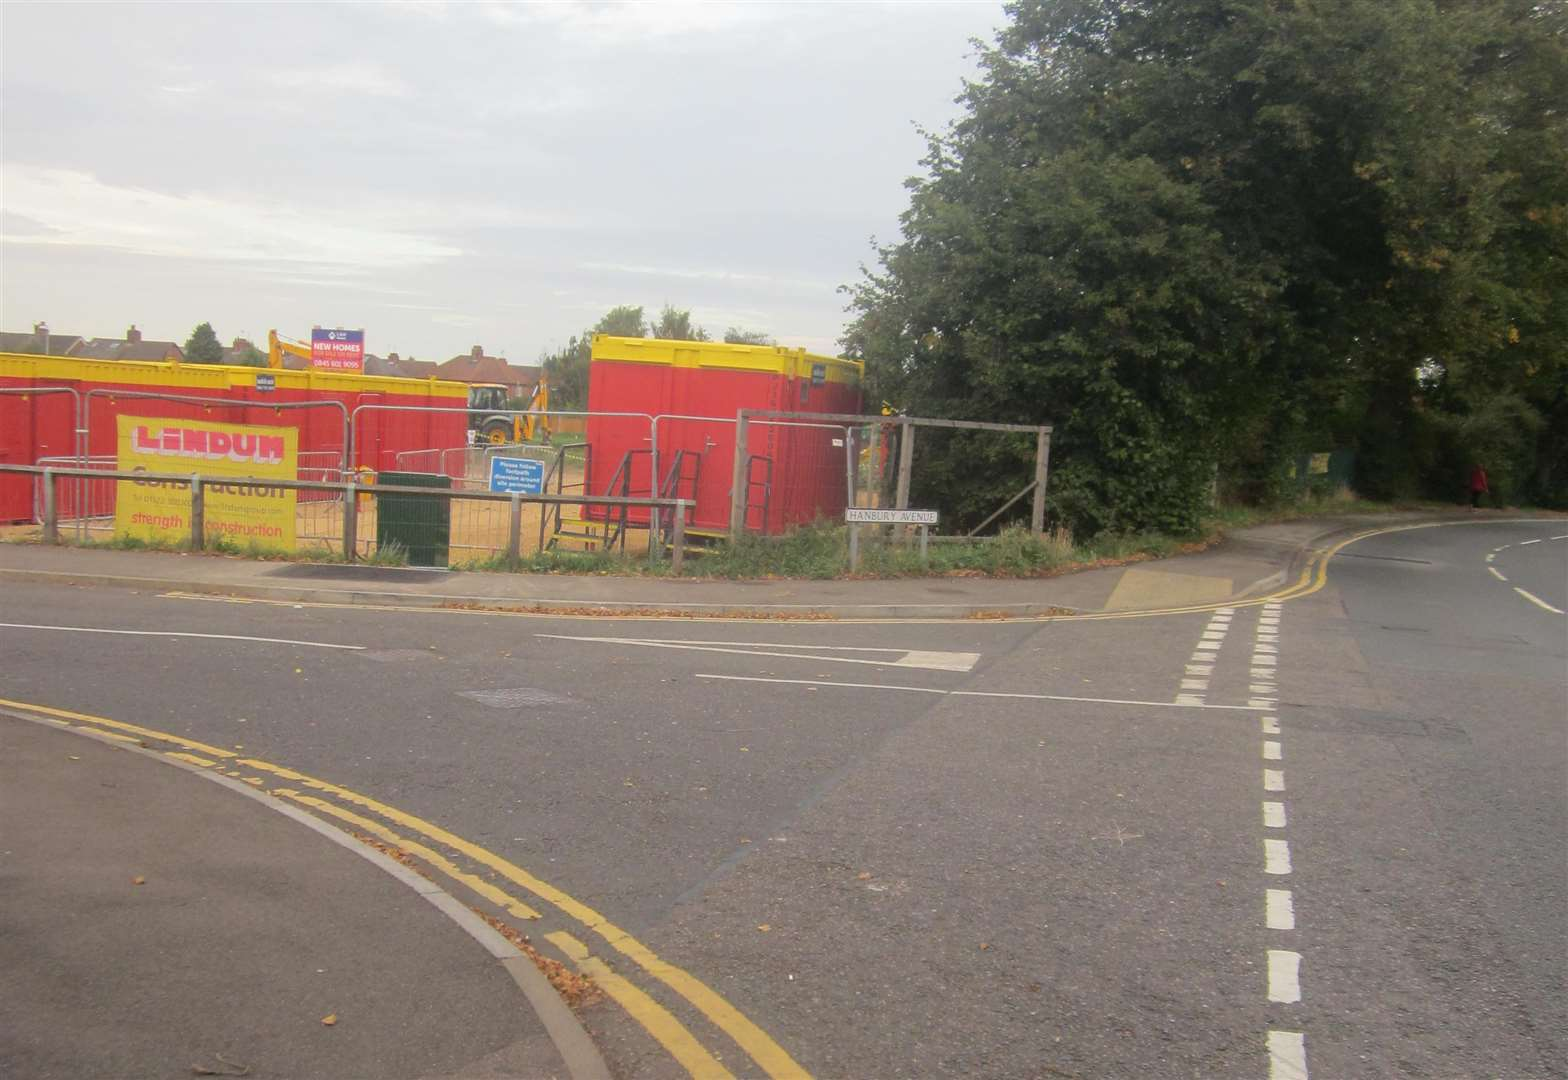 Co-op store is planned next to new housing development in Grantham